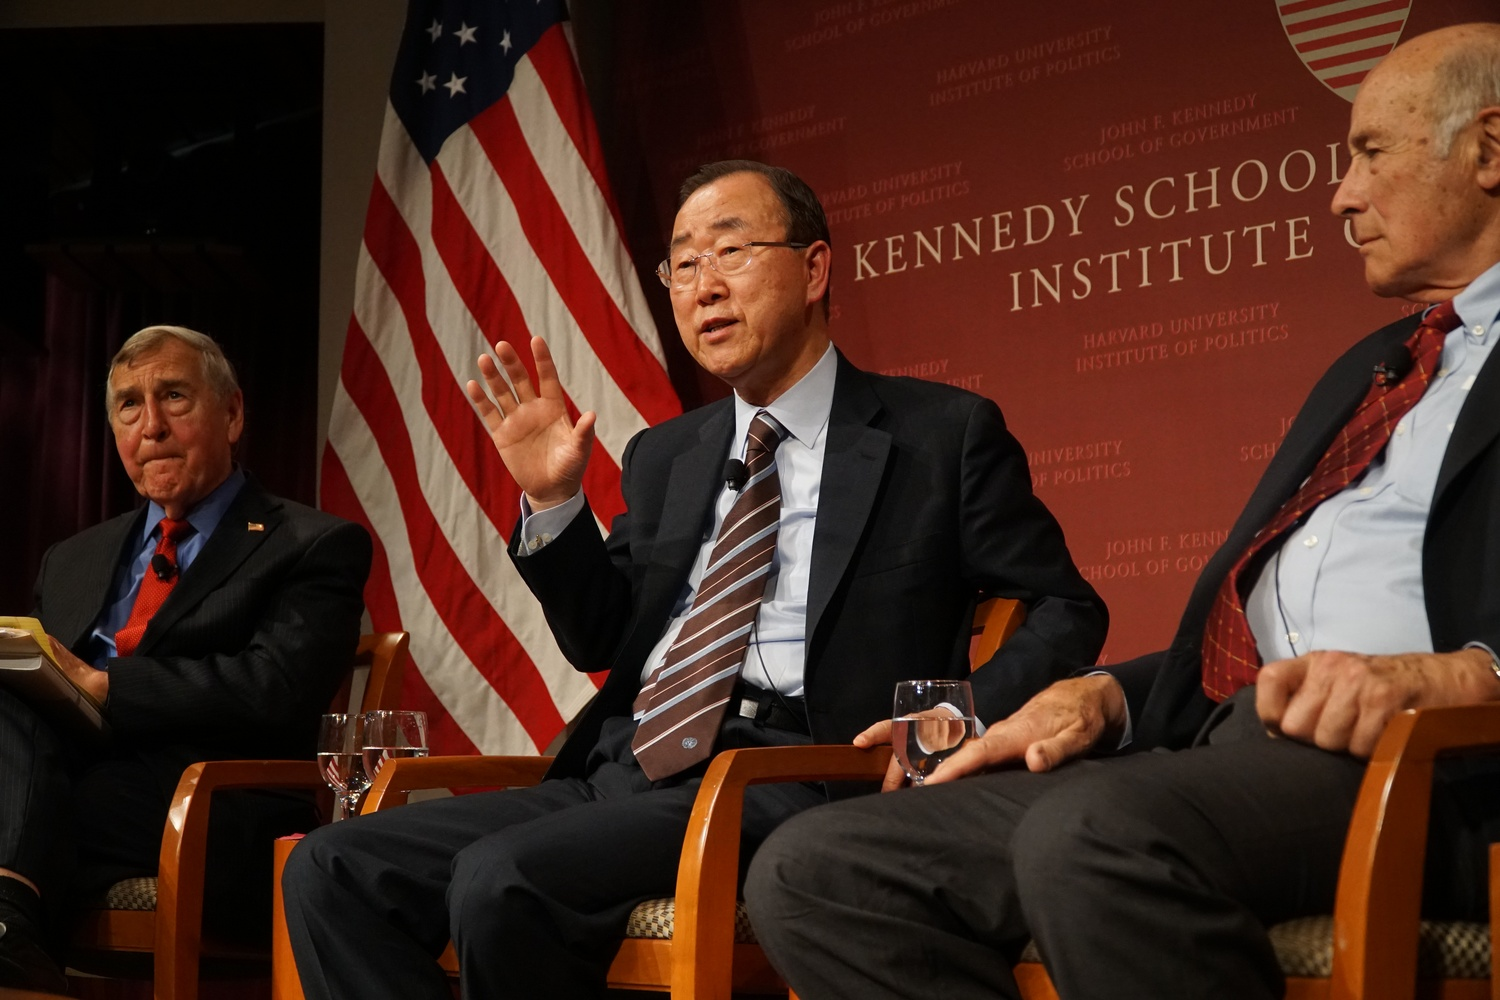 Ban Ki-moon, former Secretary-General of the United Nations, shares his opinions on global issues such as climate change, nuclear weapons in North Korea, and conflicts in Syria. Ban spoke to a full crowd at the Institute of Politics Tuesday.